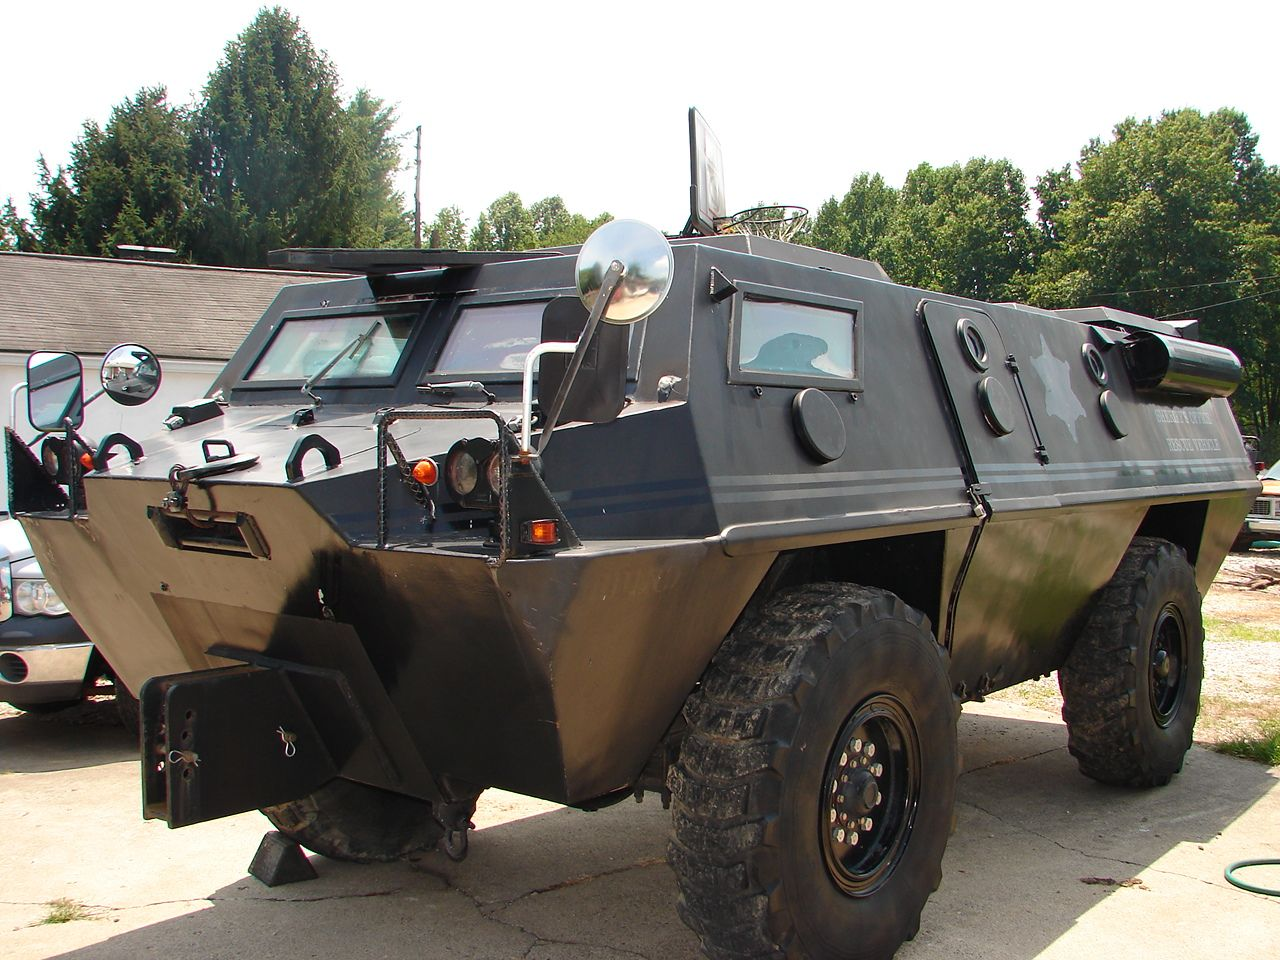 Armored Vehicles For Sale >> Armor Page 1 Armored Vehicles Vehicles Military Vehicles